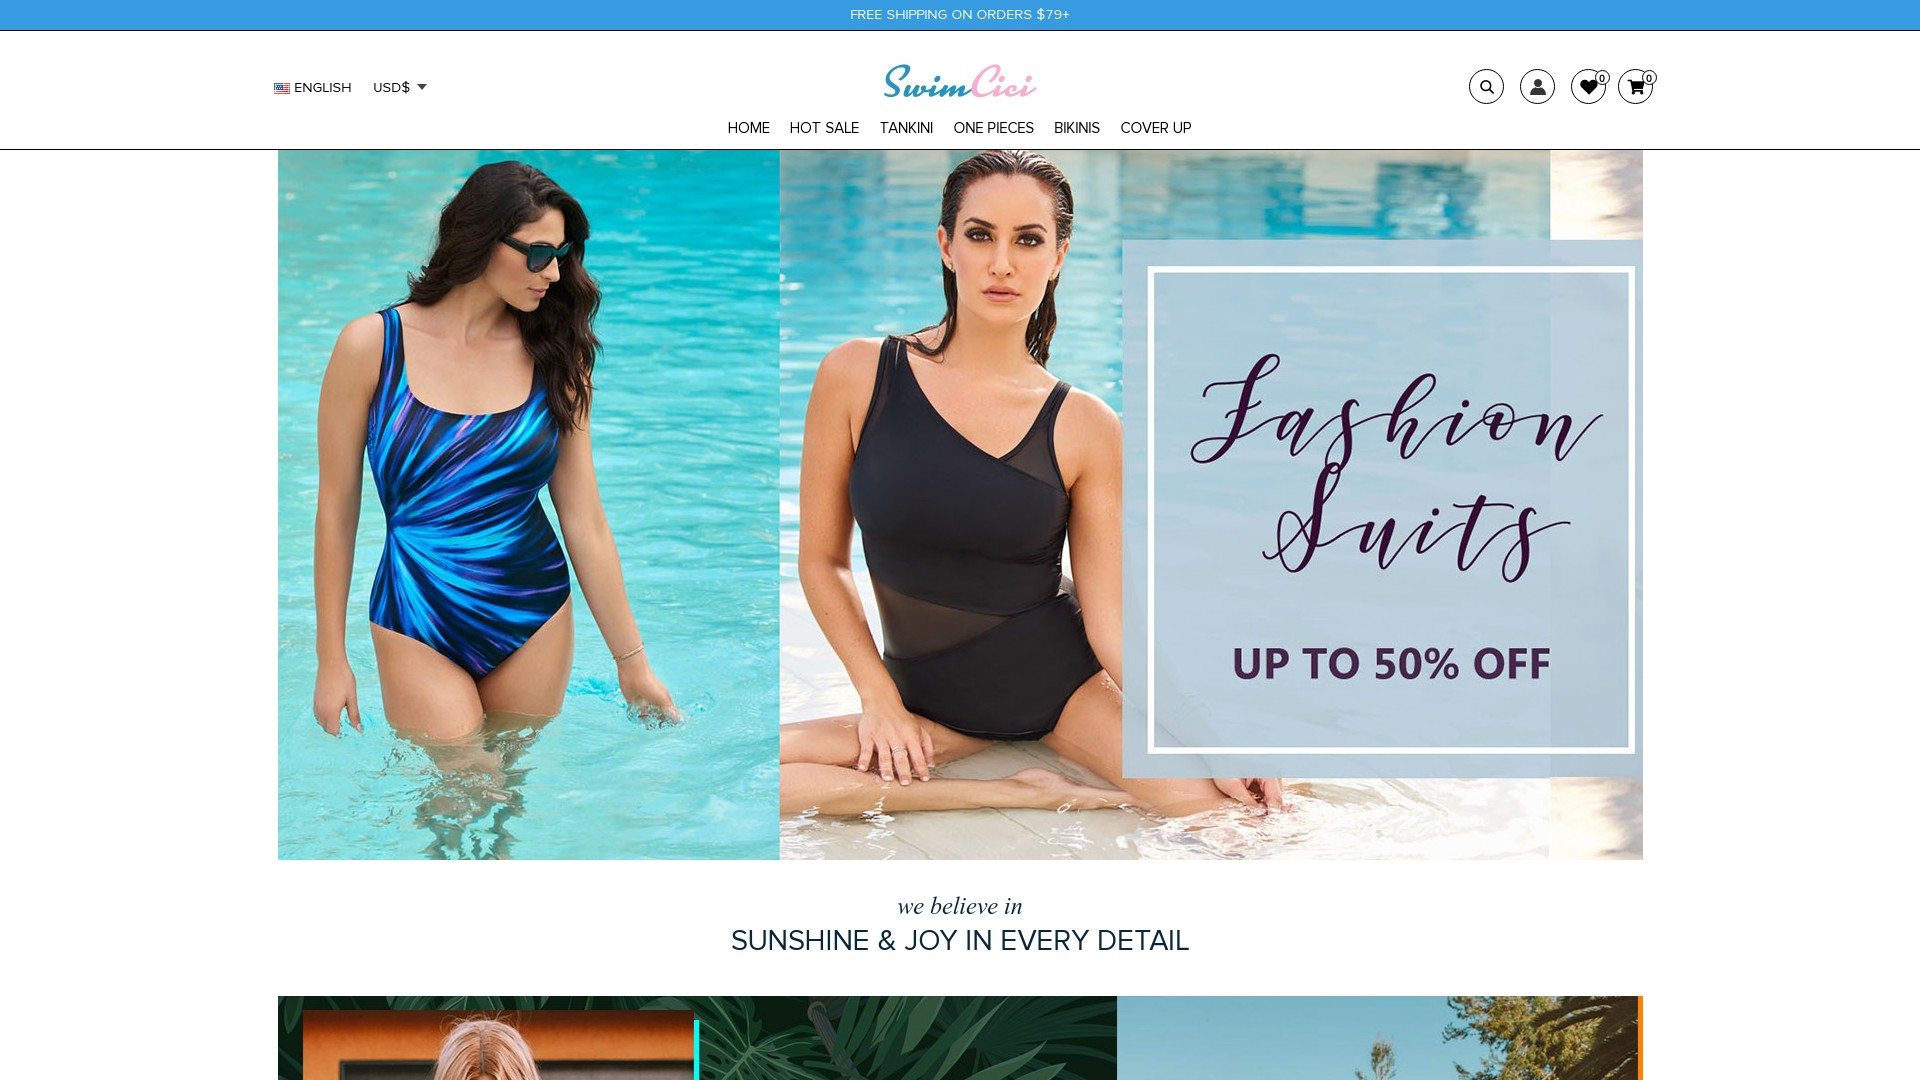 Is Swimcici a Scam? Review of the Online Store